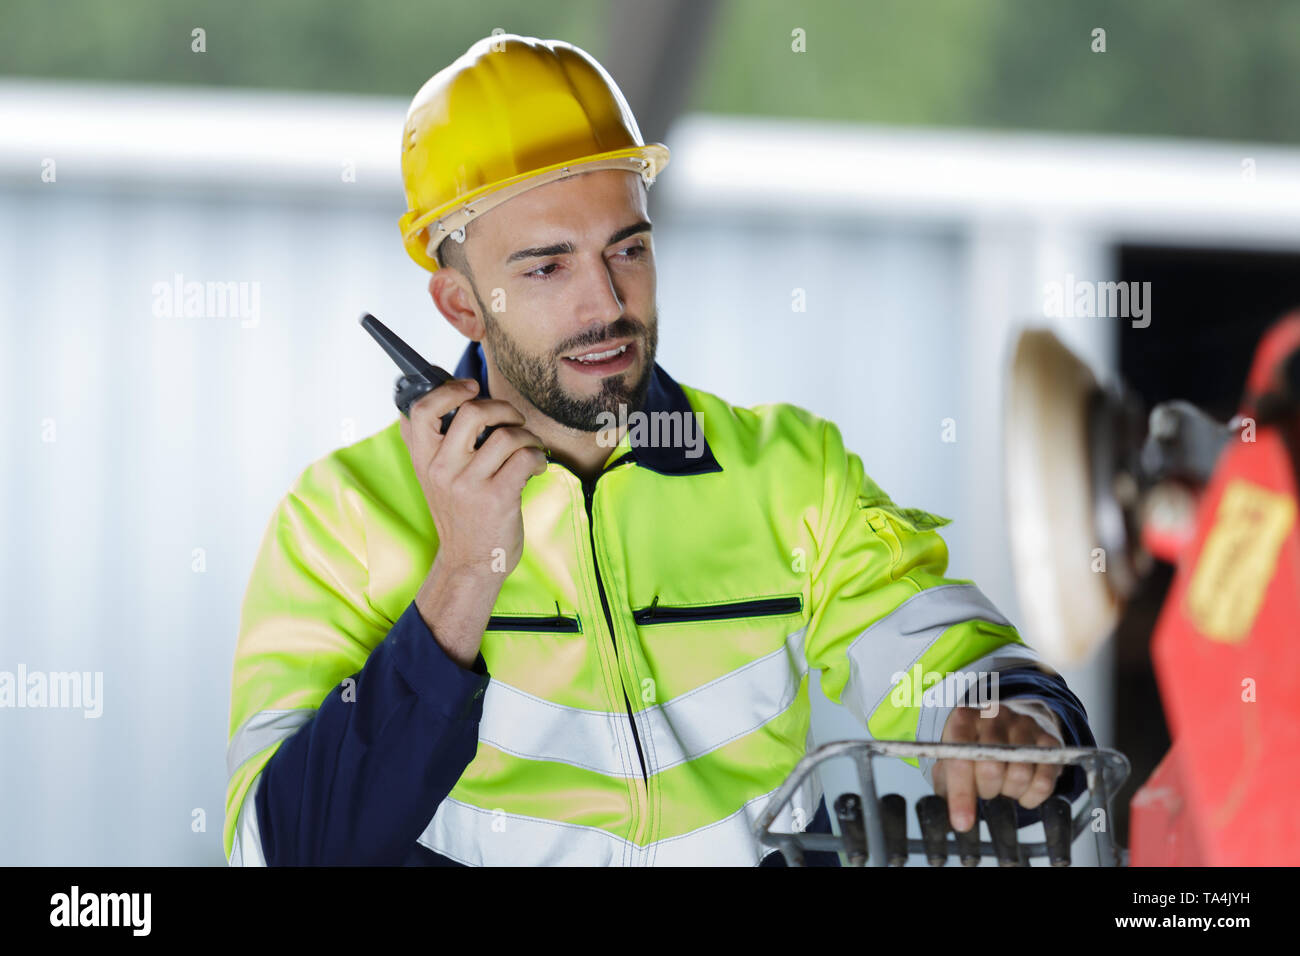 male engineer communicating on walkie-talkie at site - Stock Image